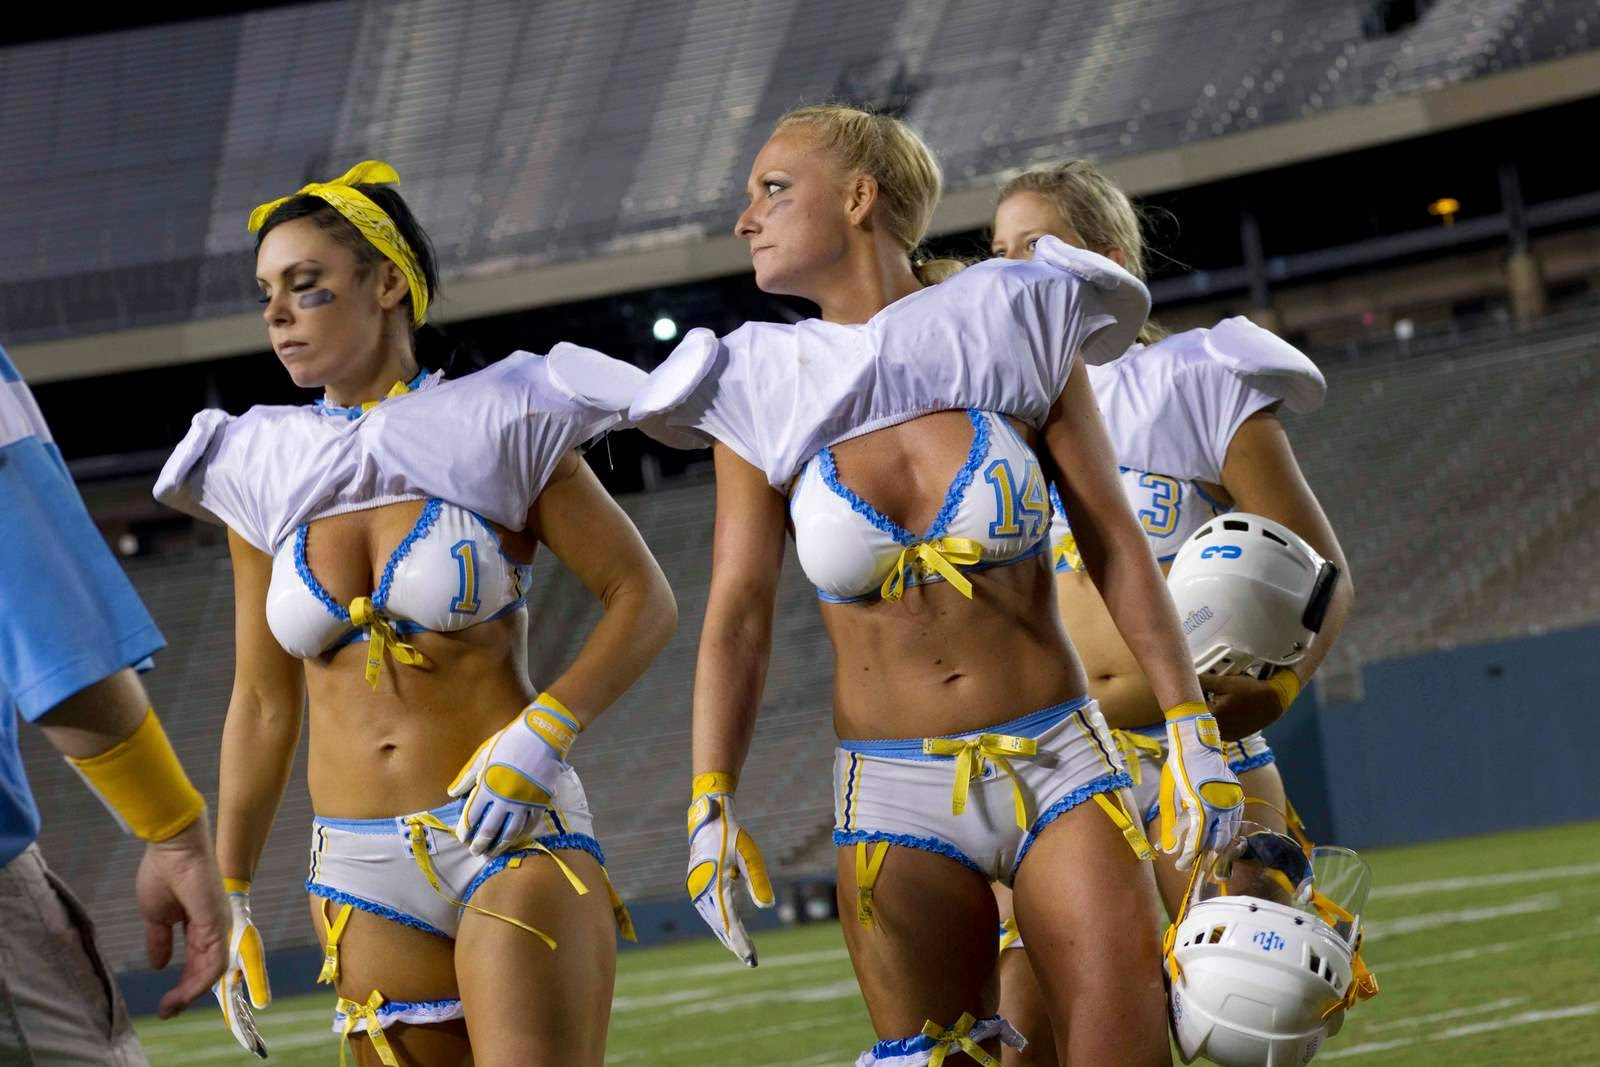 Female Lingerie Football 76